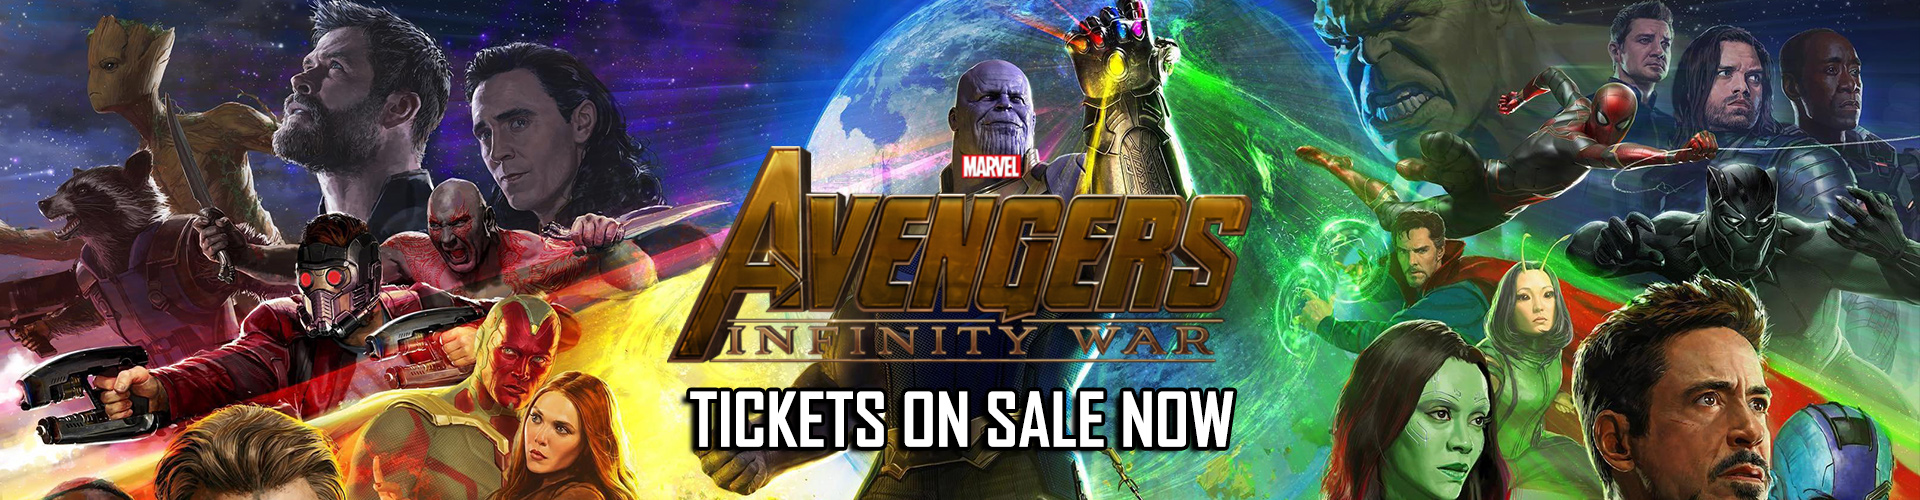 avengers-tickets-on-sale